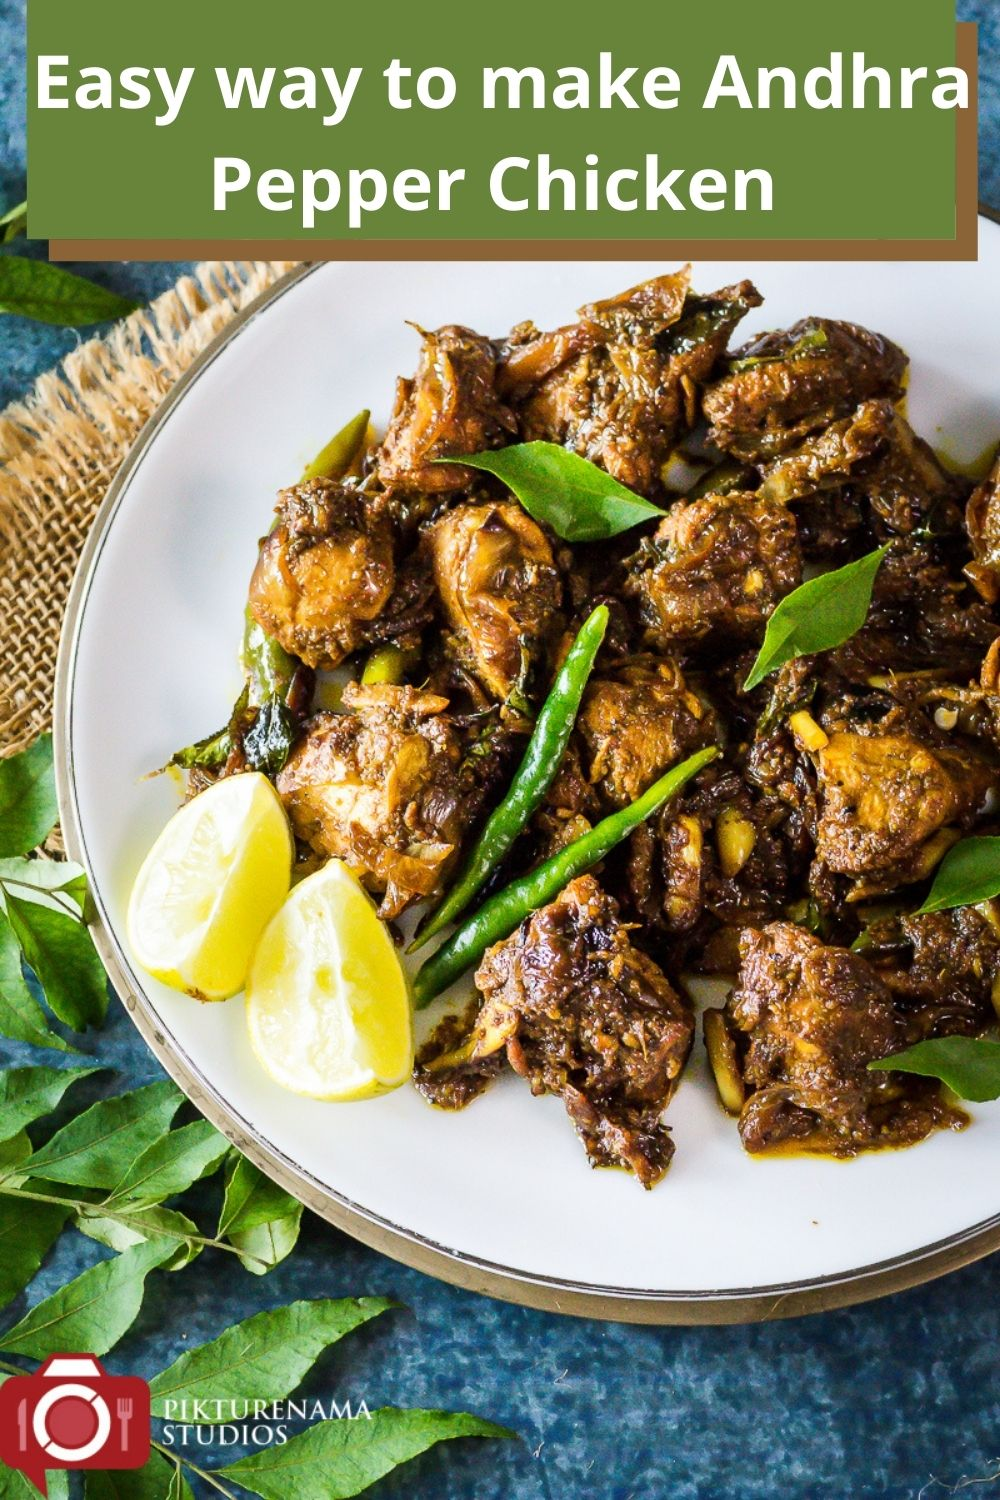 Easy way to make Andhra Pepper Chicken pinterest